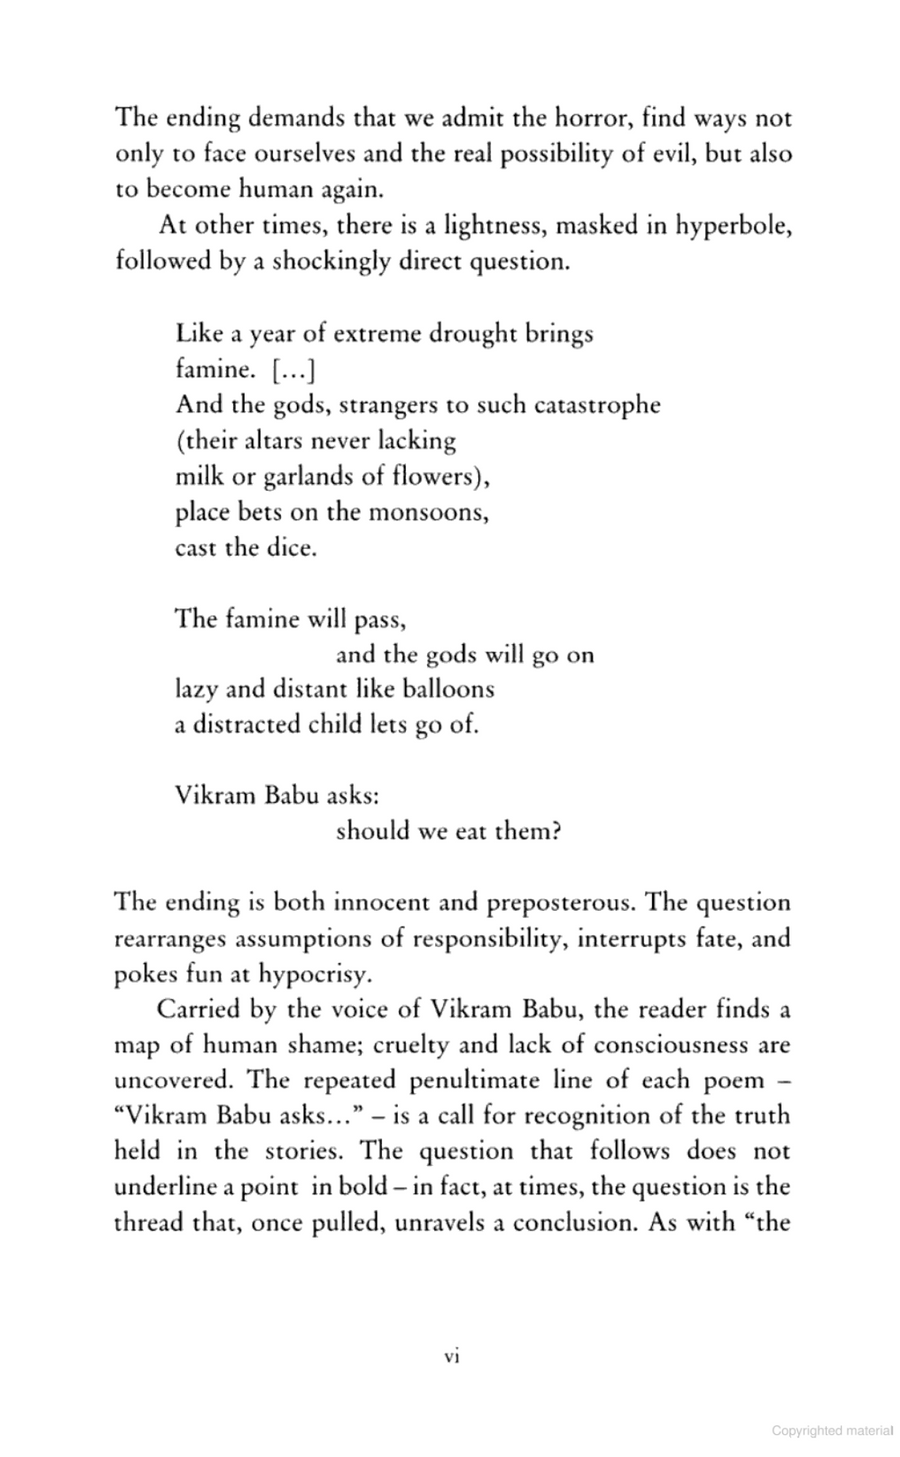 The Poems of Vikram Babu by Jesús Aguado